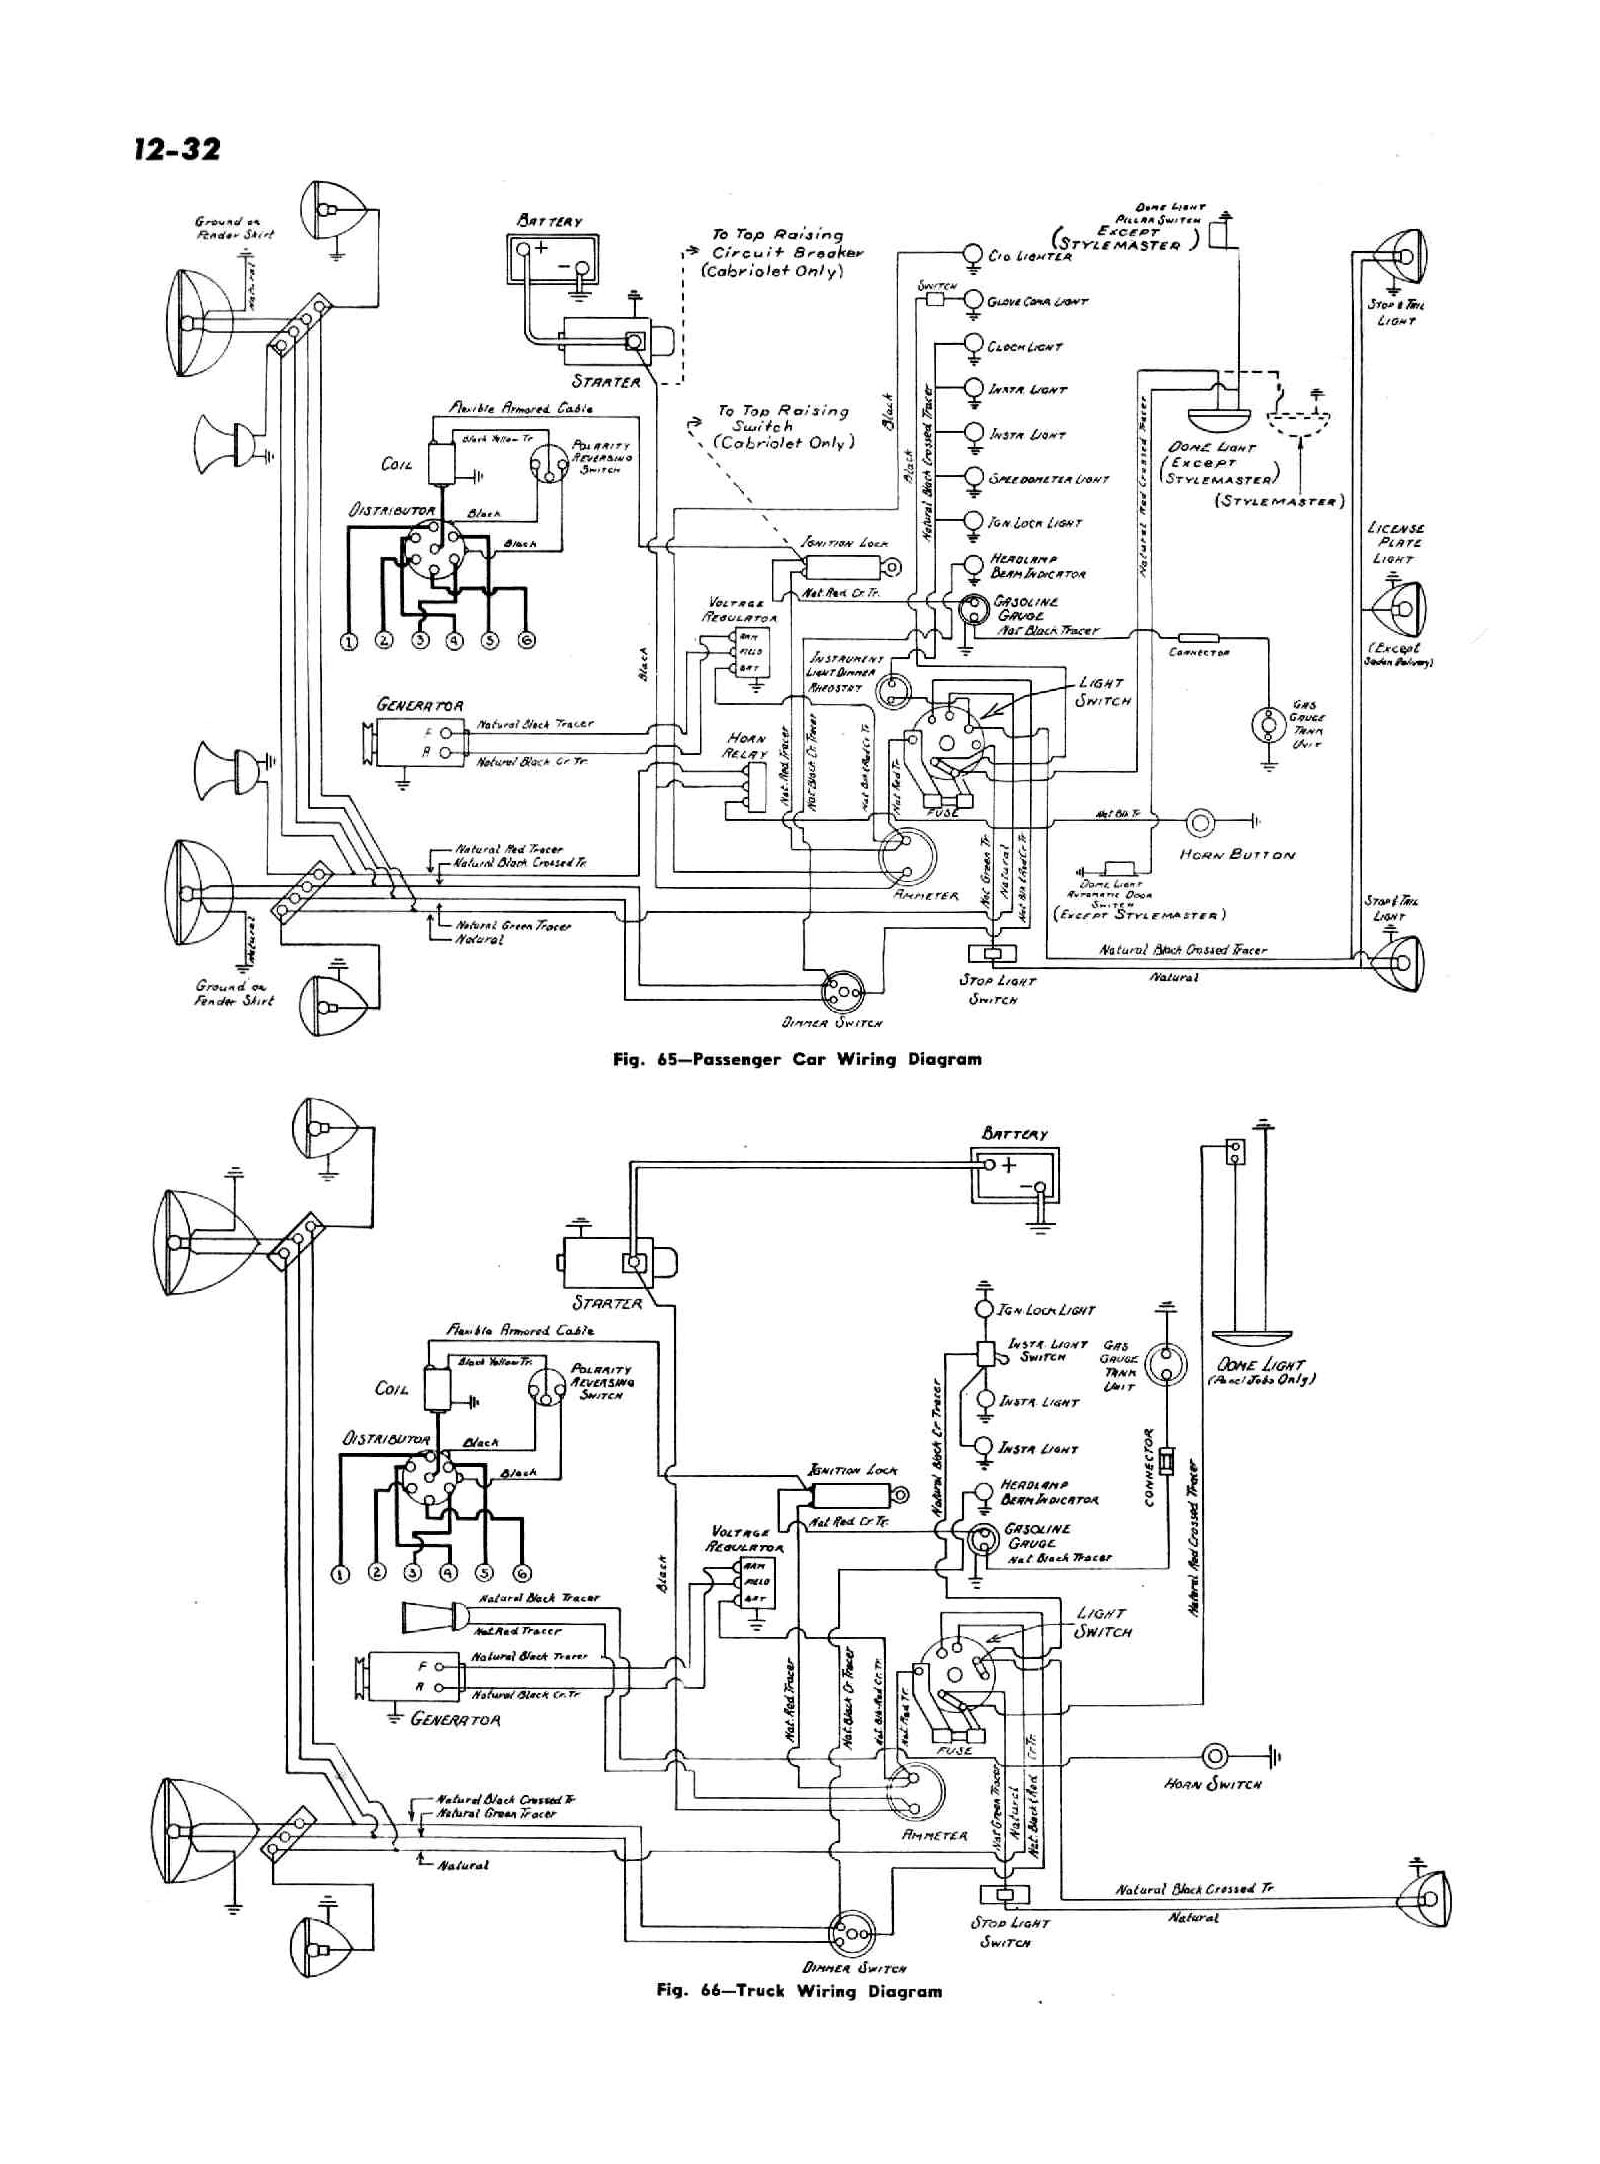 1991 Chevy Kodiak Wiring Diagram Trusted Explained Diagrams Ford Expedition